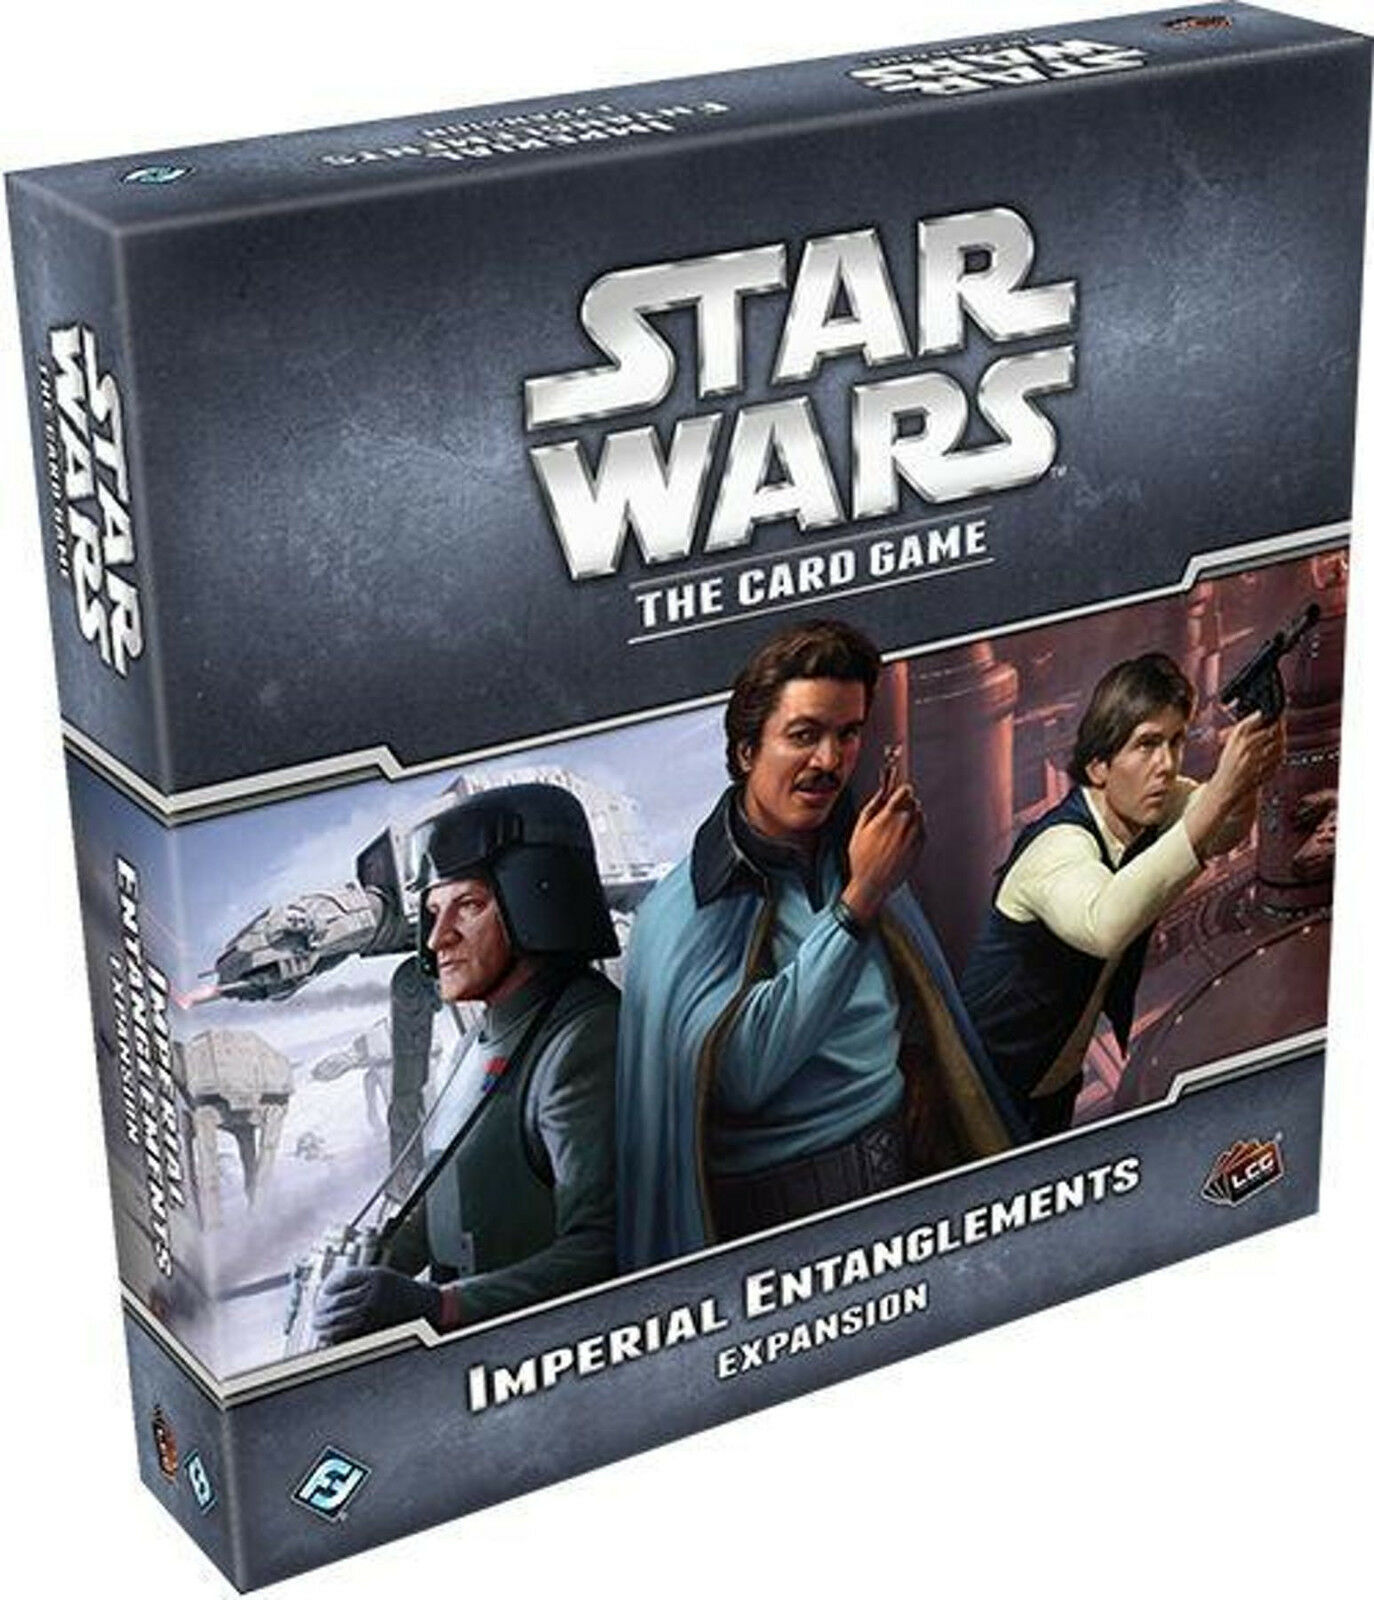 Star Wars LCG Imperial Entanglements Deluxe Expansion